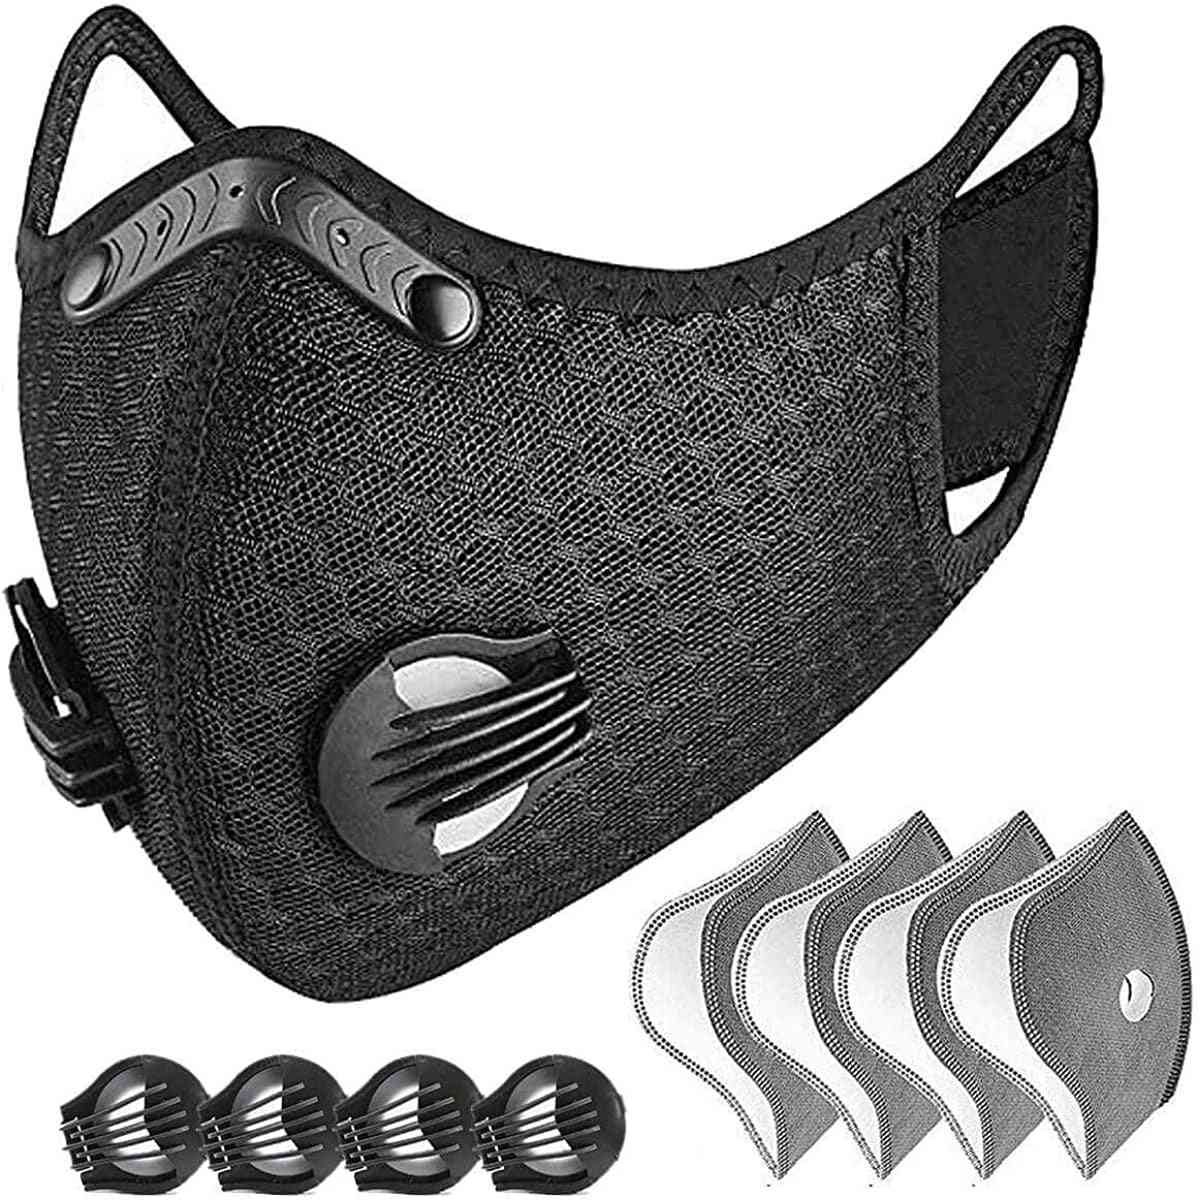 Unisex 4 Filters, 4 Exhaust Valves Half Face Mask